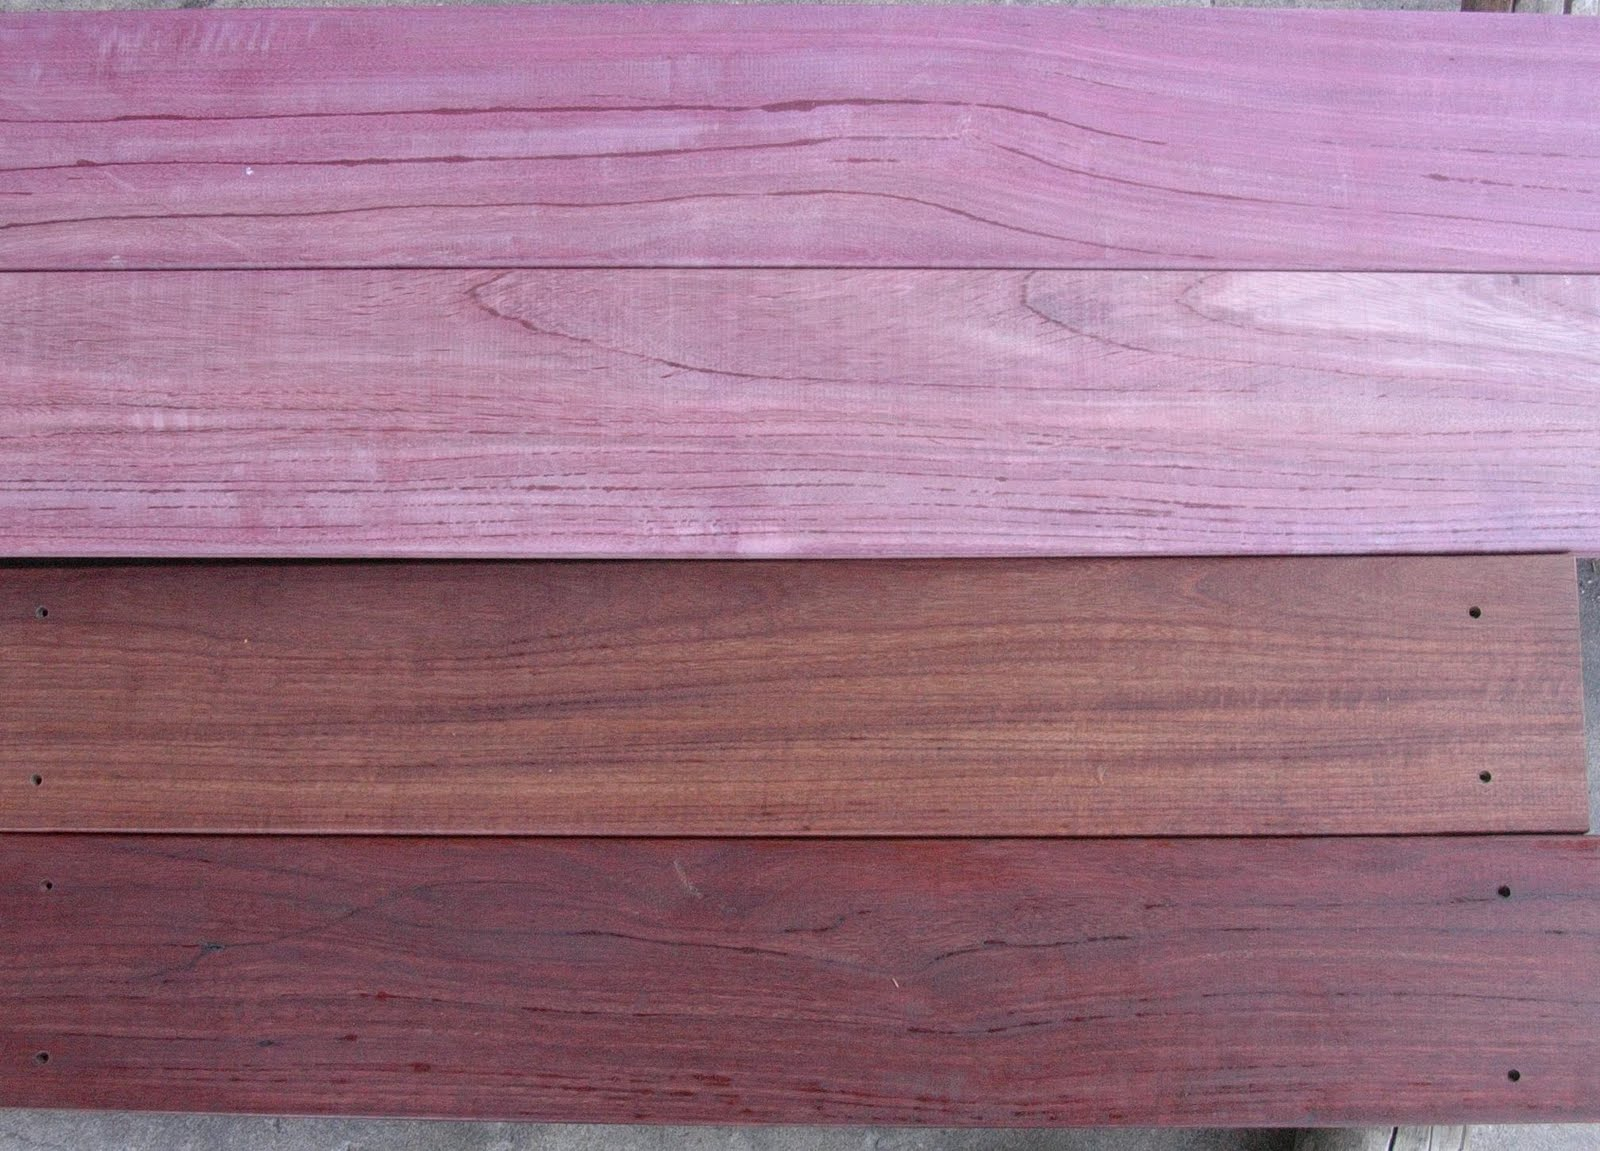 Brazilian Hardwood Decking Purple Heart Hardwood Decking